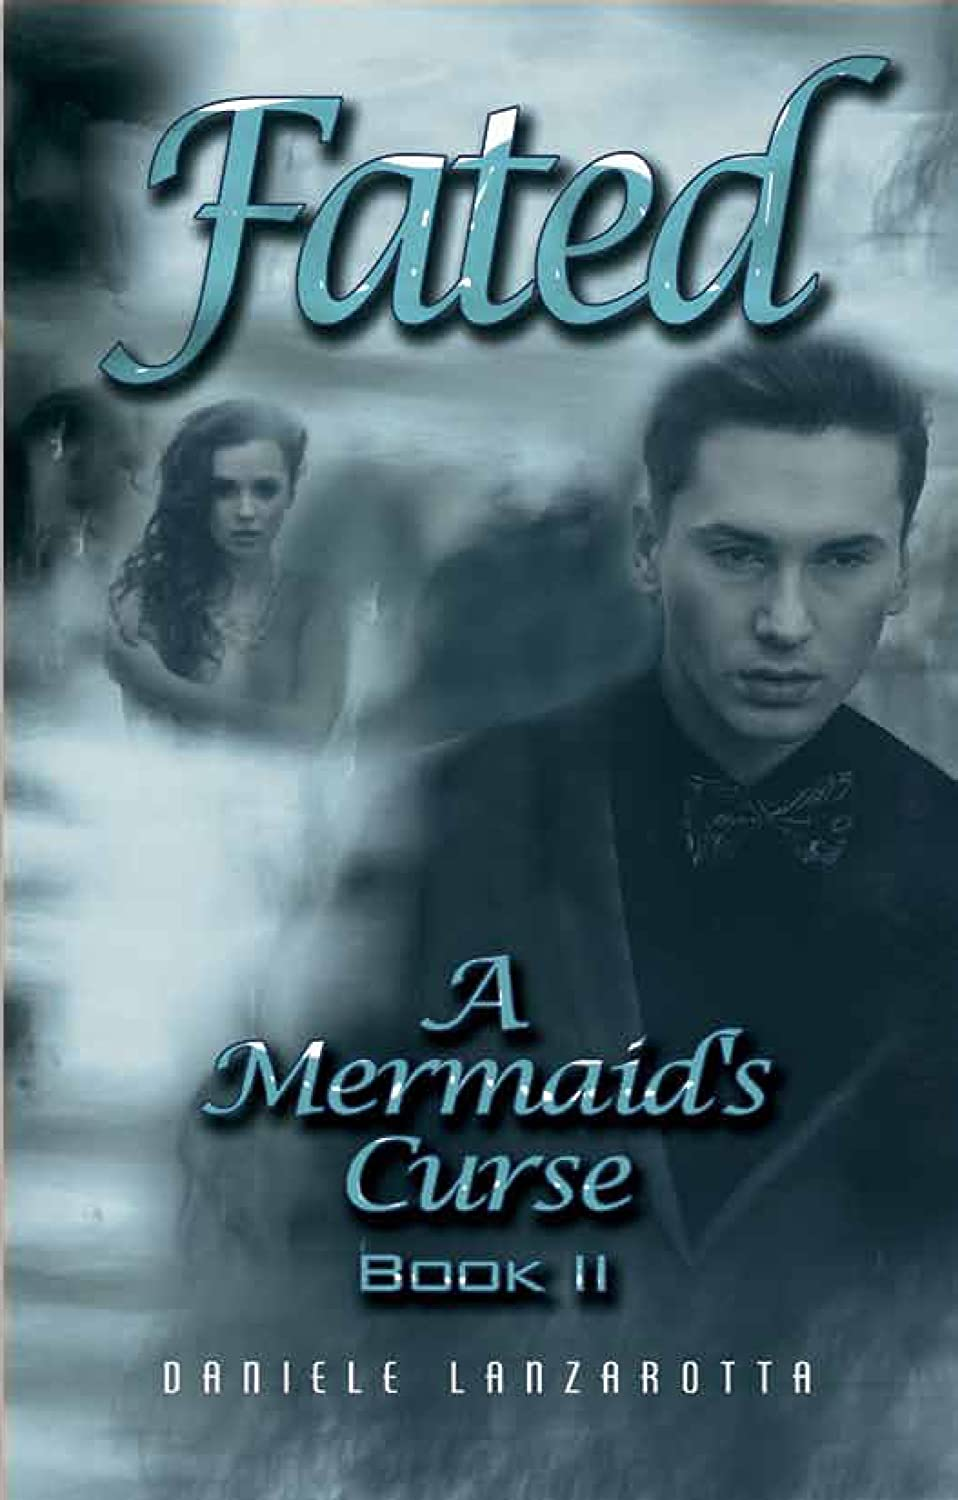 http://www.amazon.com/Fated-A-Mermaids-Curse-2-ebook/dp/B00FTDM7YK/ref=pd_sim_kstore_1